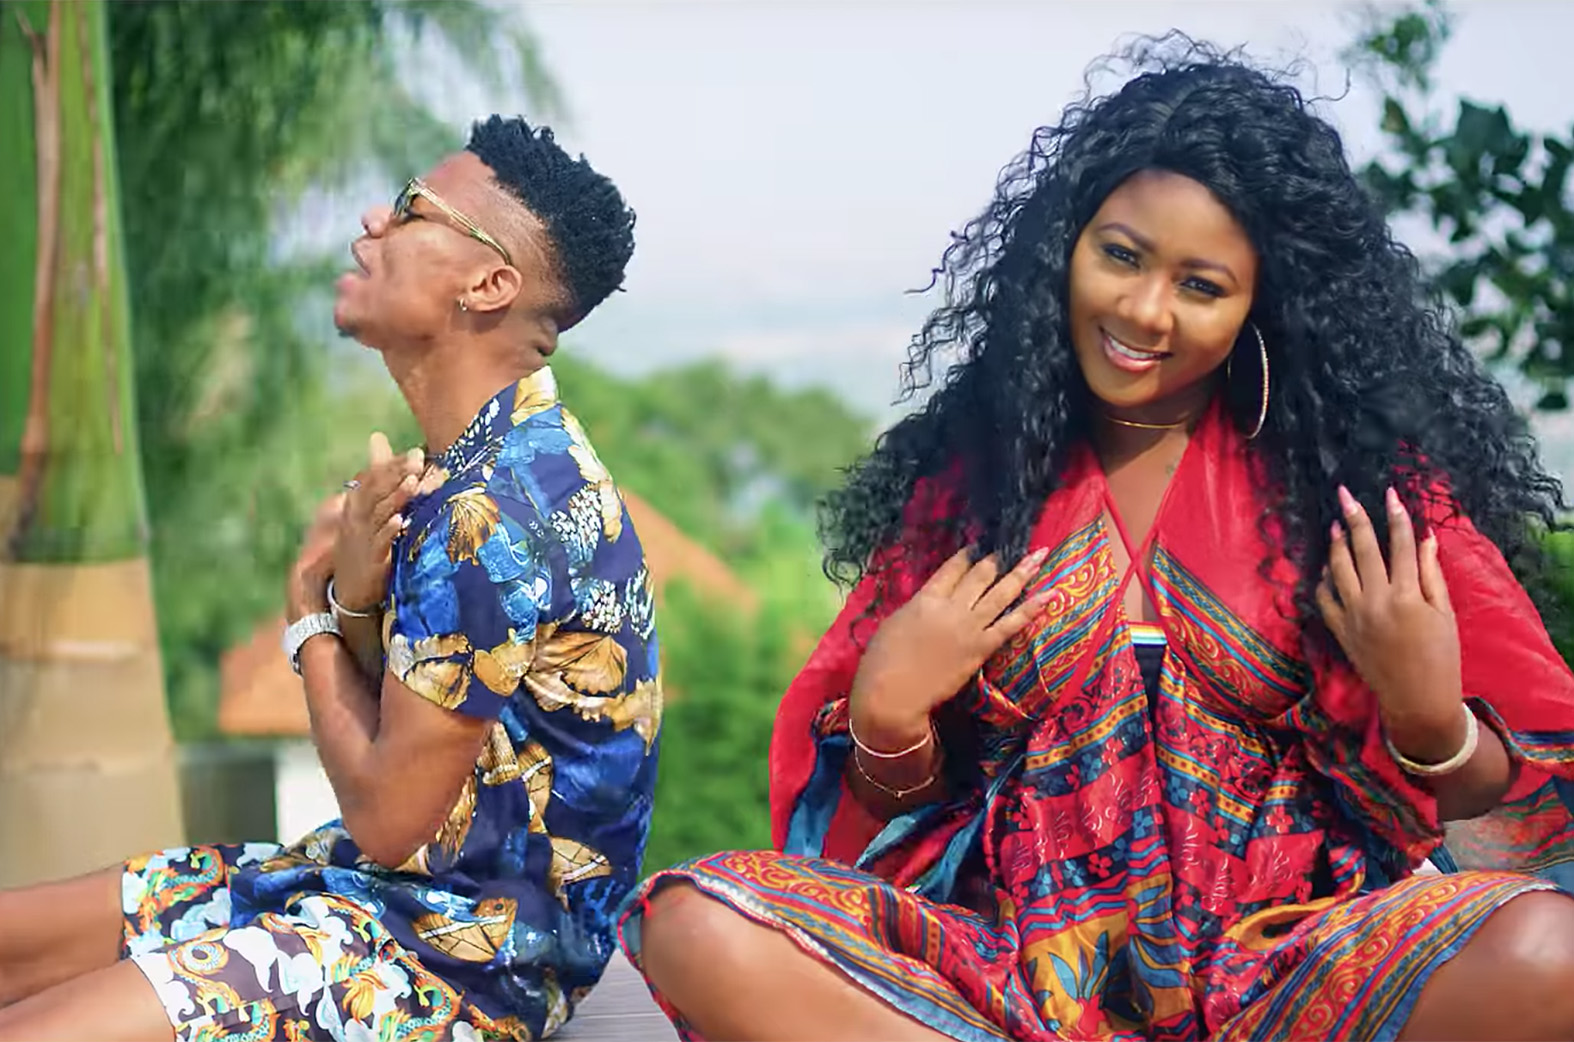 Video: Thunder by KiDi